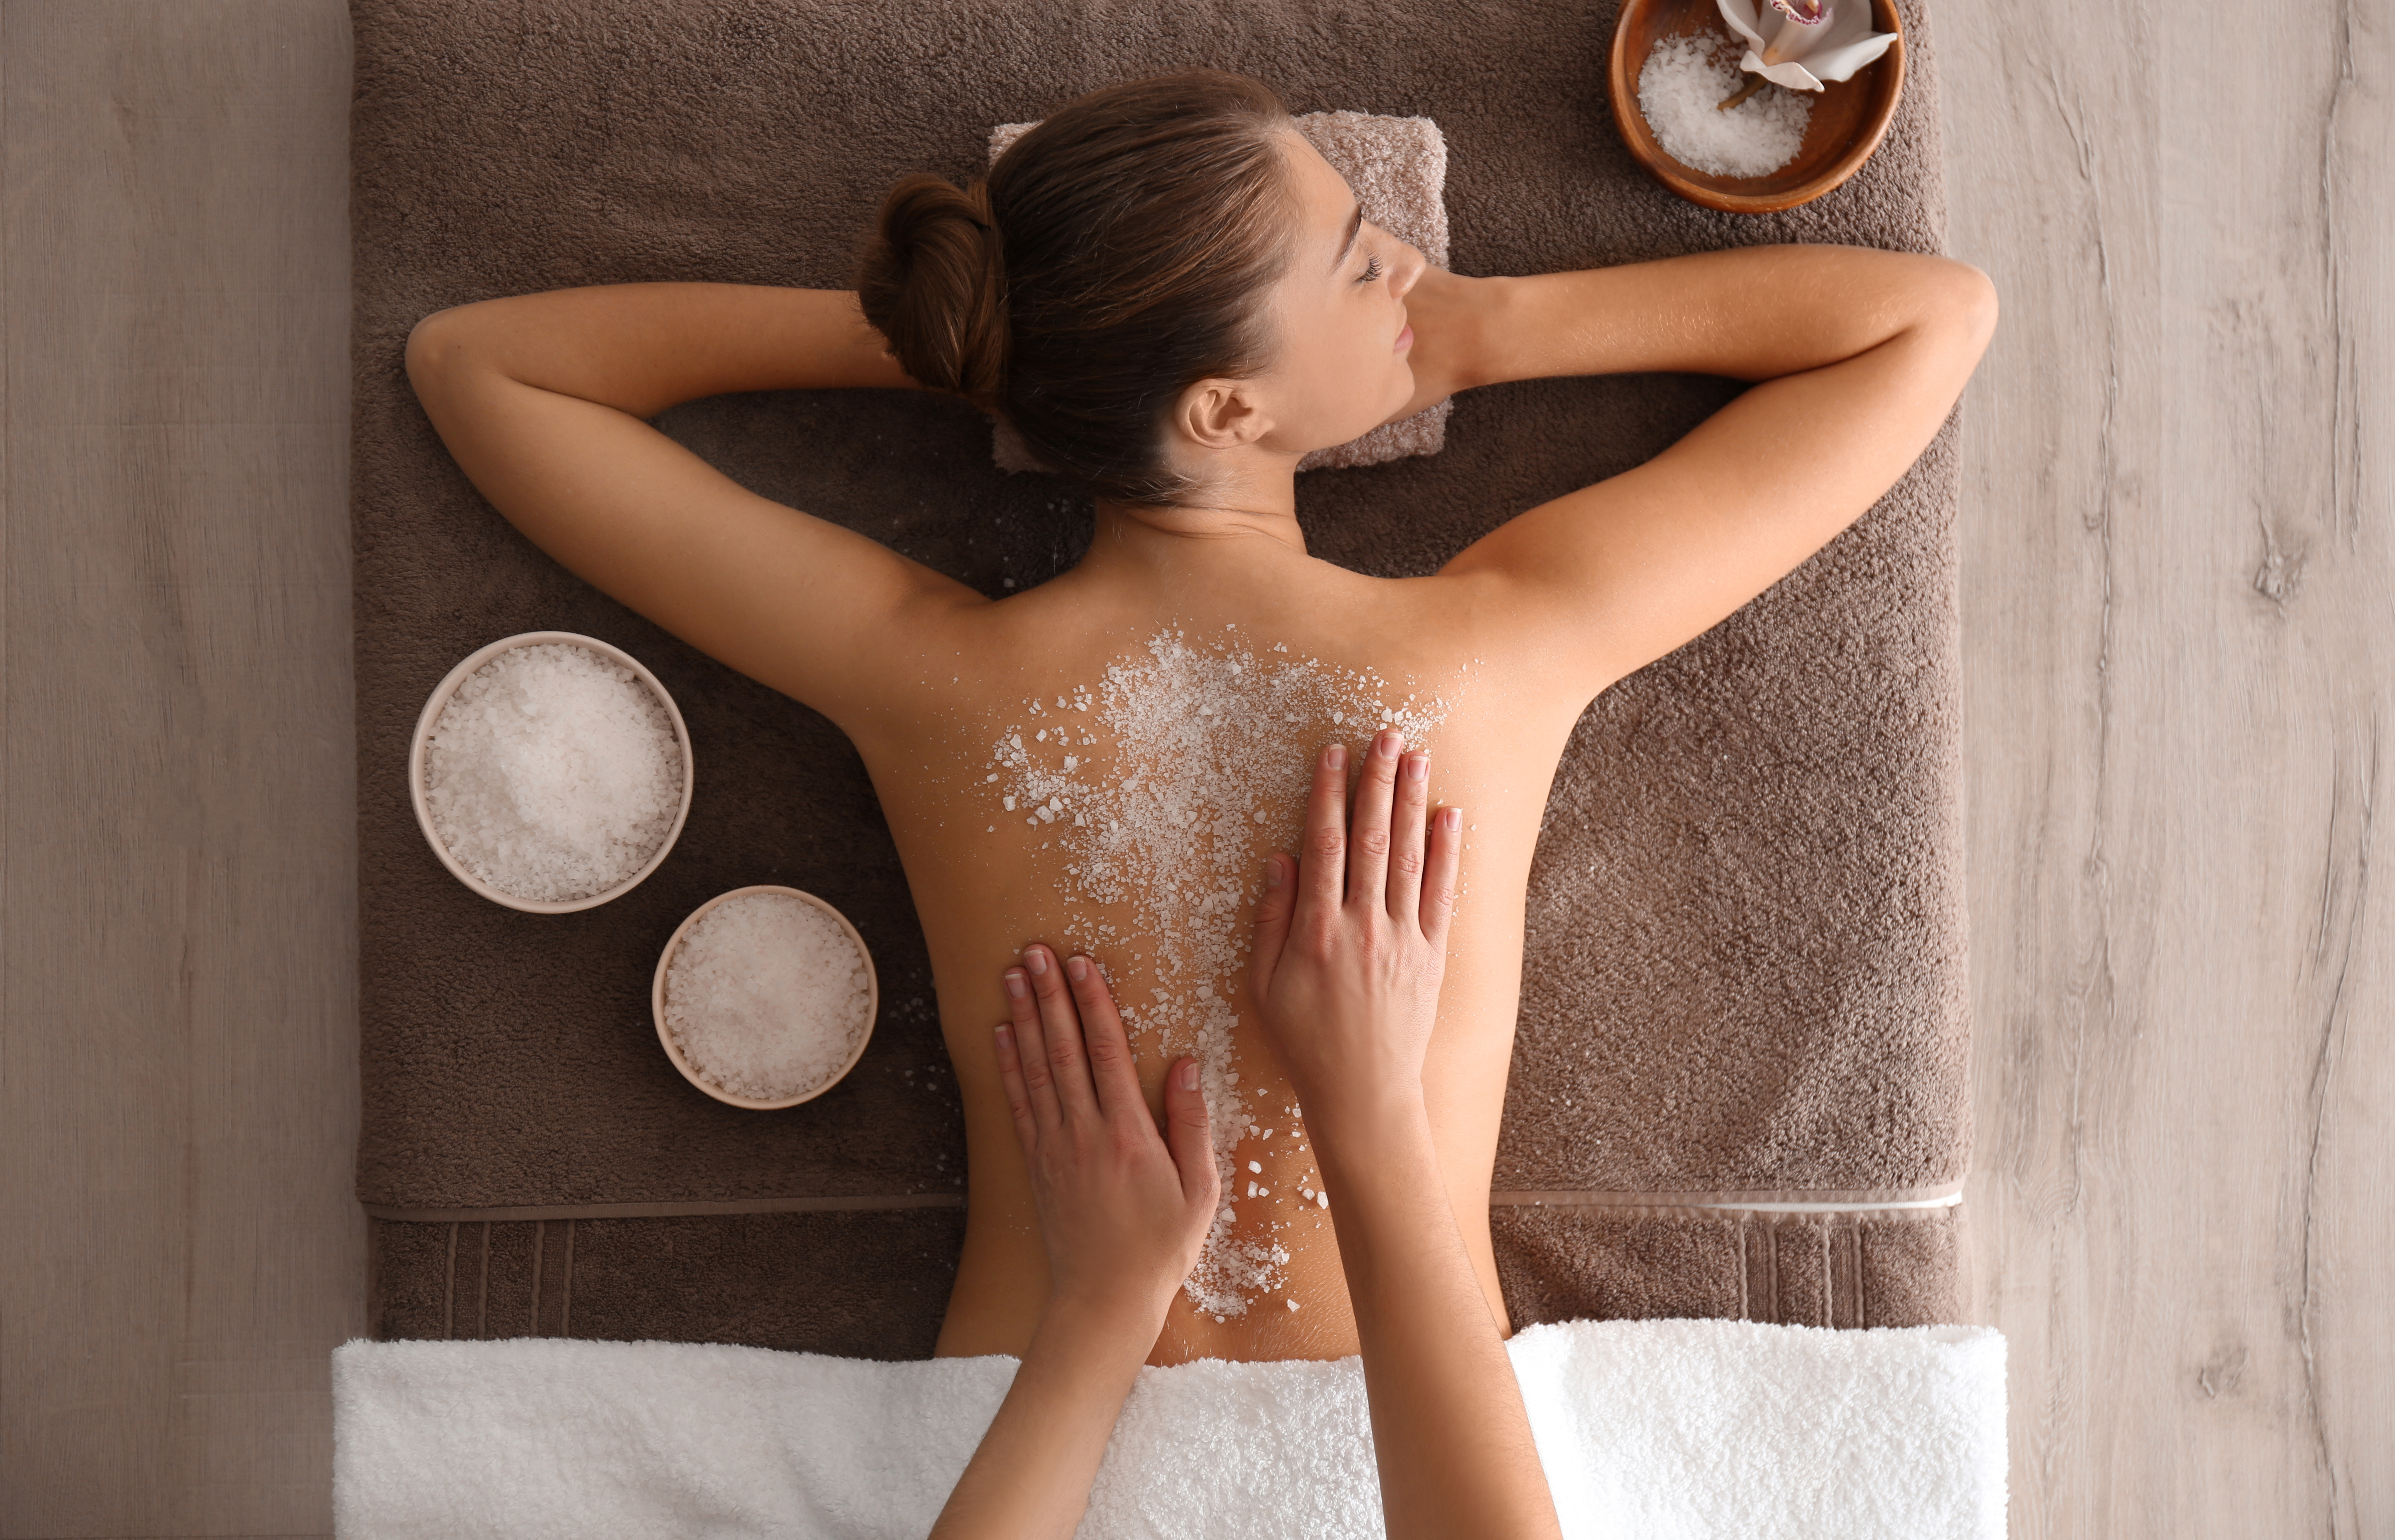 Massage Table Must-Haves